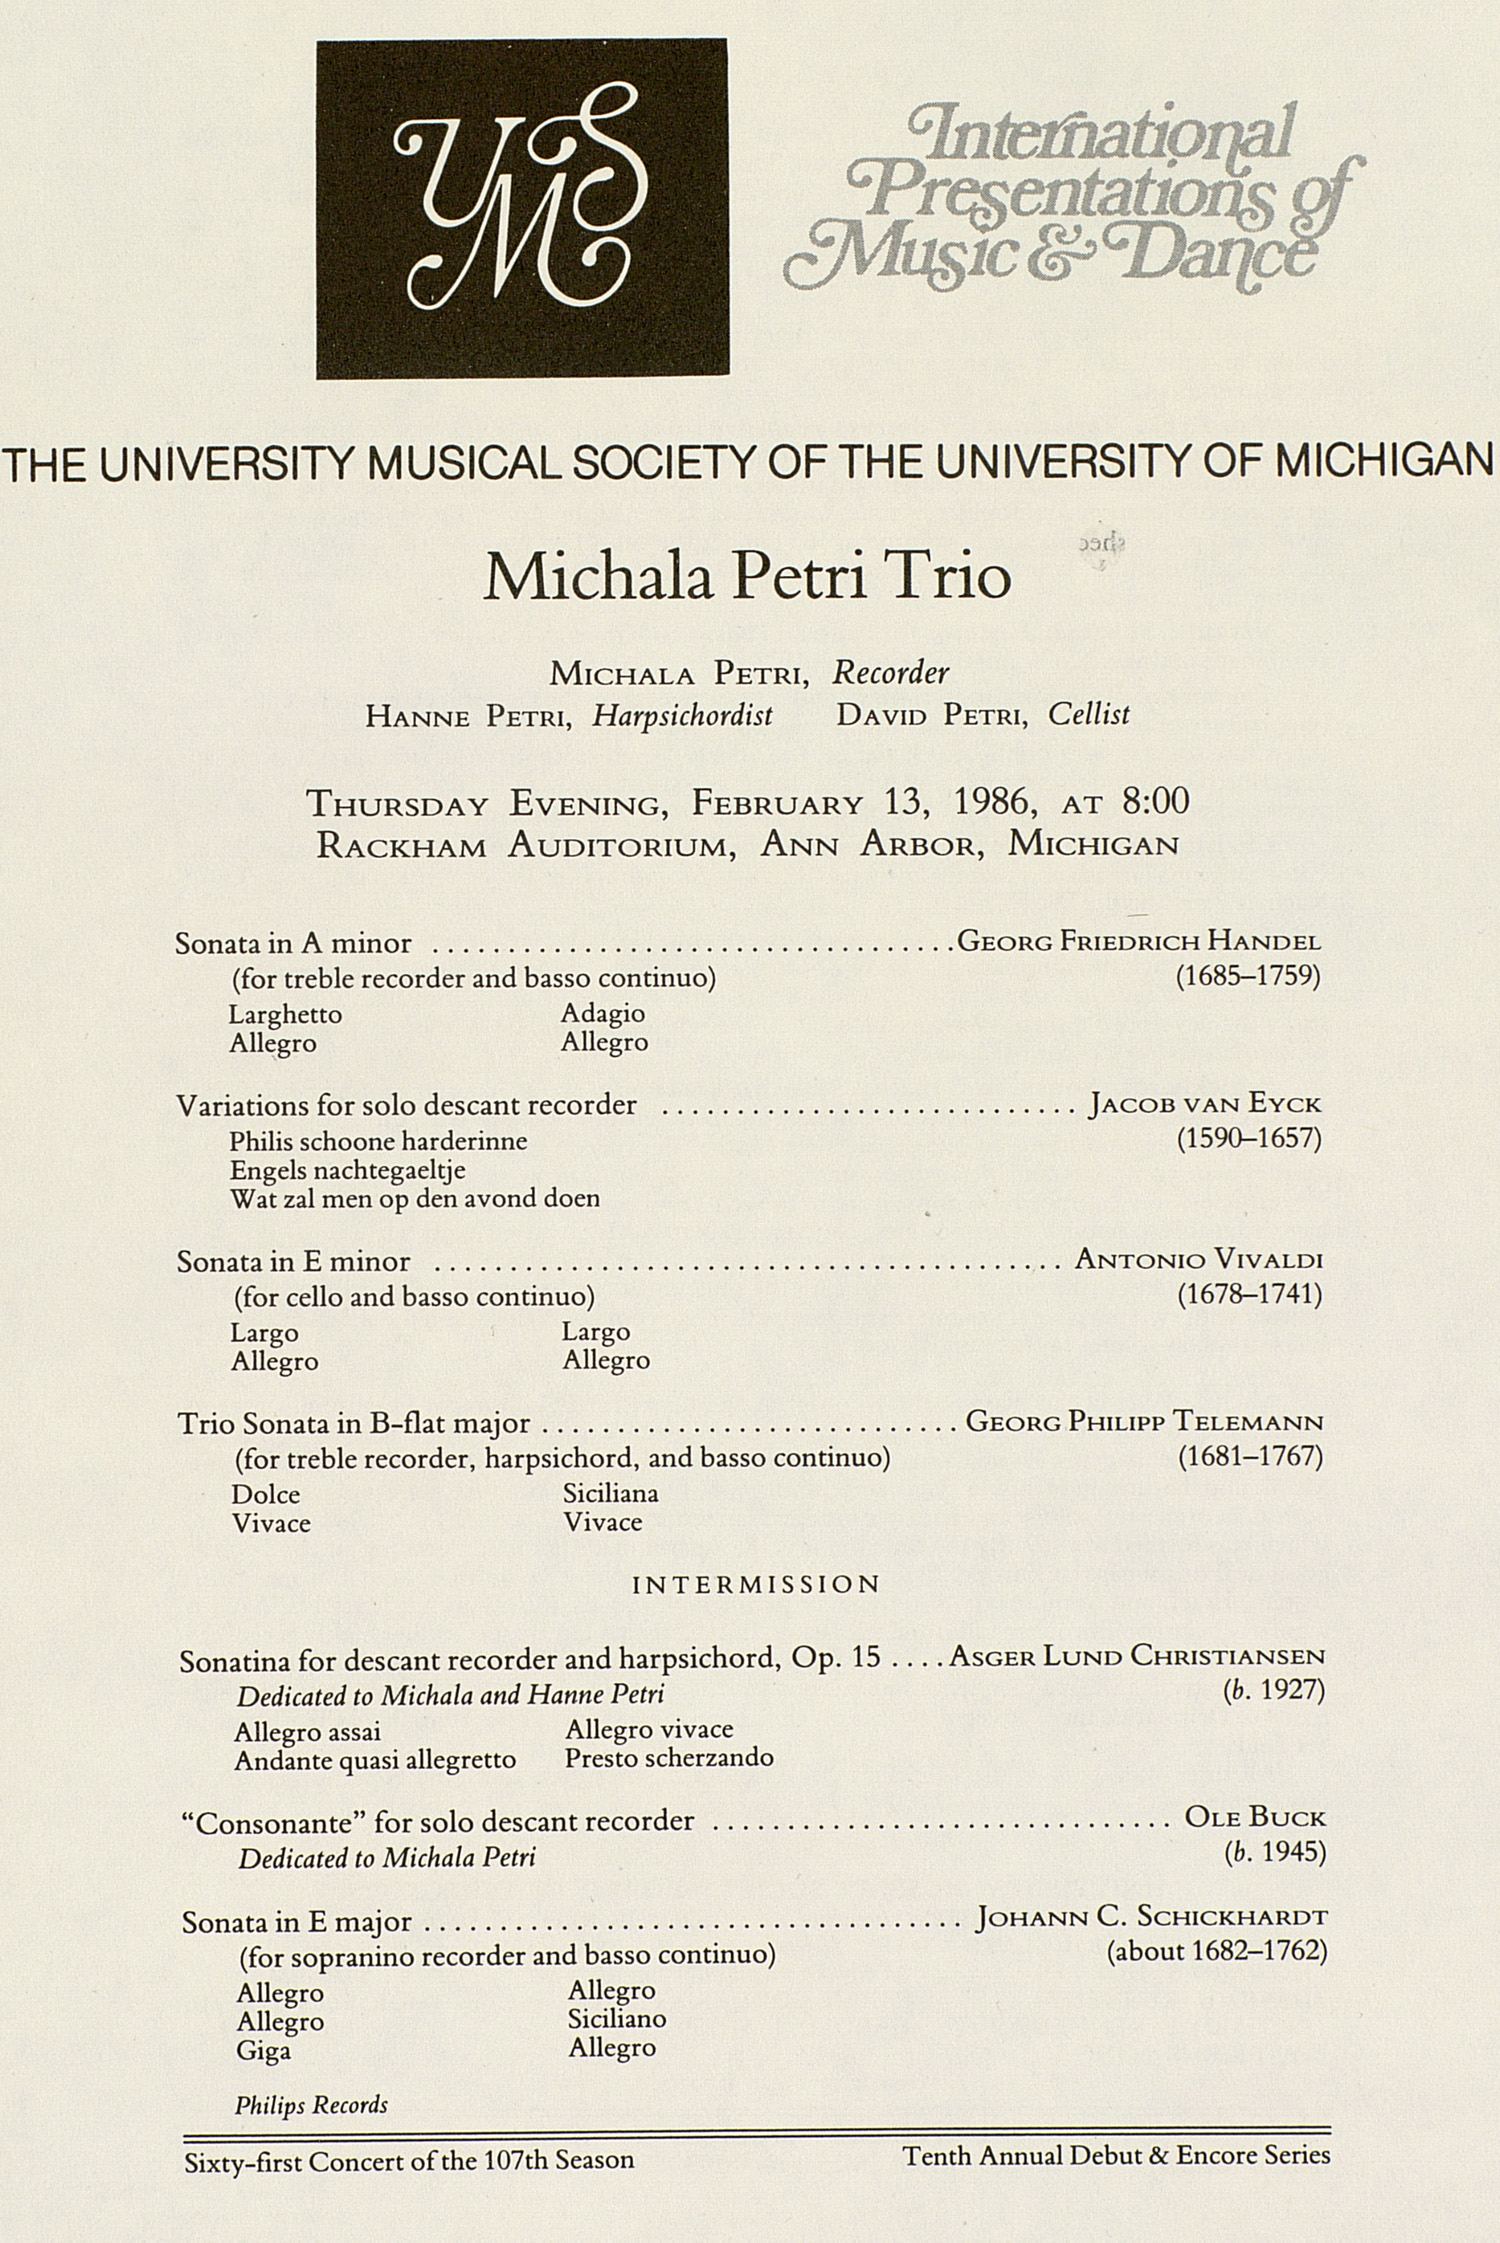 UMS Concert Program, February 13, 1986: International Presentations Of Music & Dance -- Michala Petri Trio image